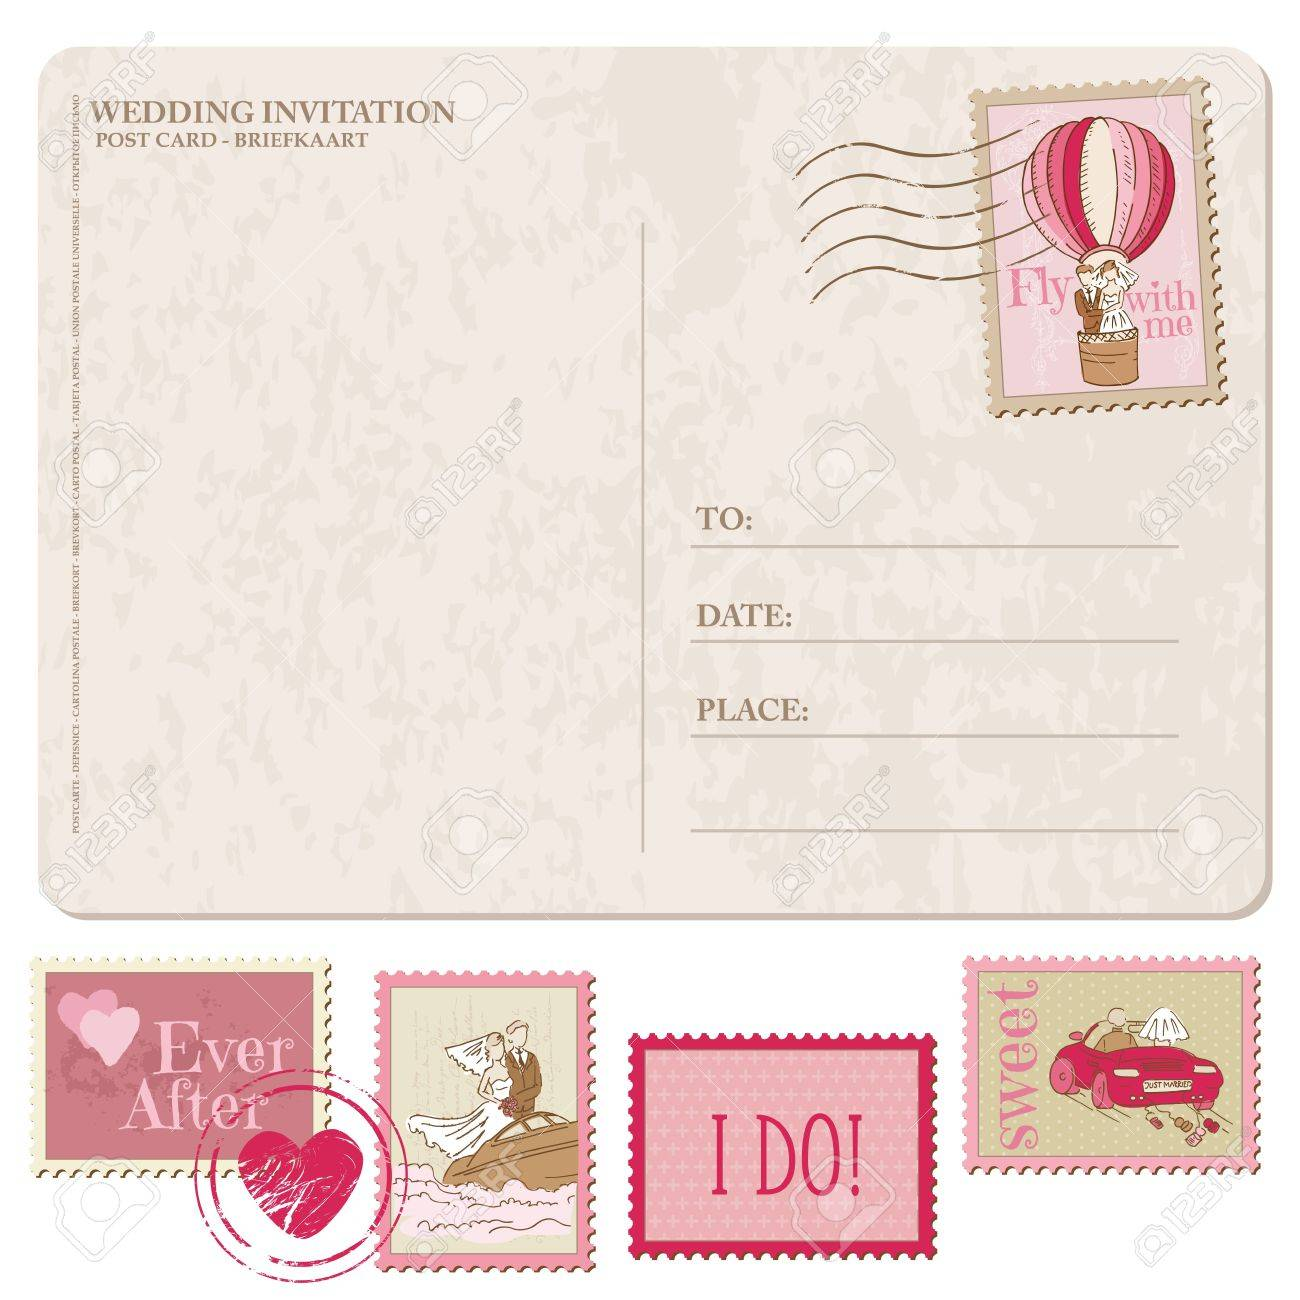 How to scrapbook a wedding invitation - Vector Wedding Invitation Vintage Postcard With Postage Stamps For Design And Scrapbook